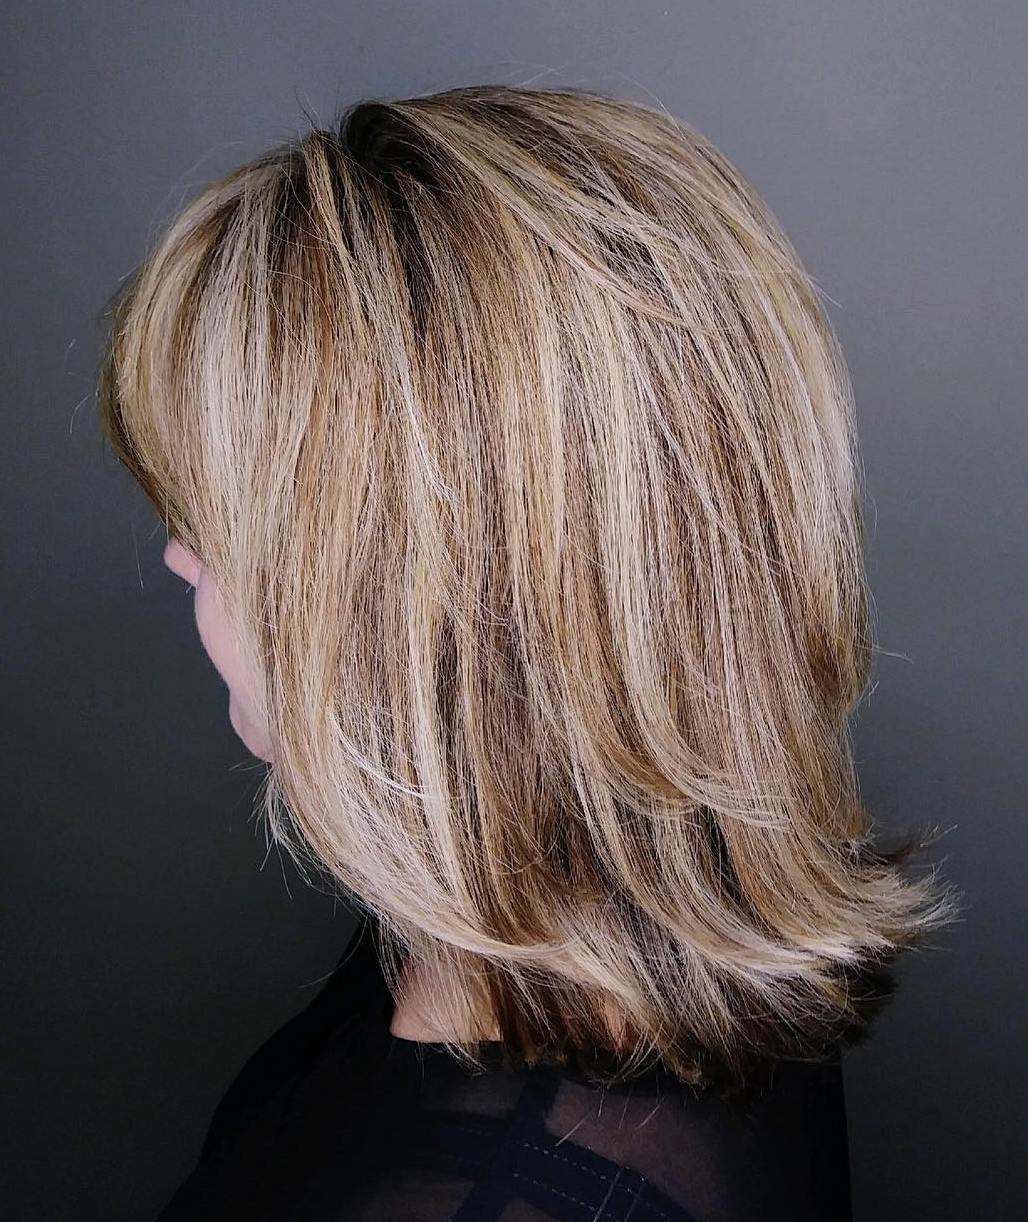 Shoulder Length Layered Cut for Thick Hair